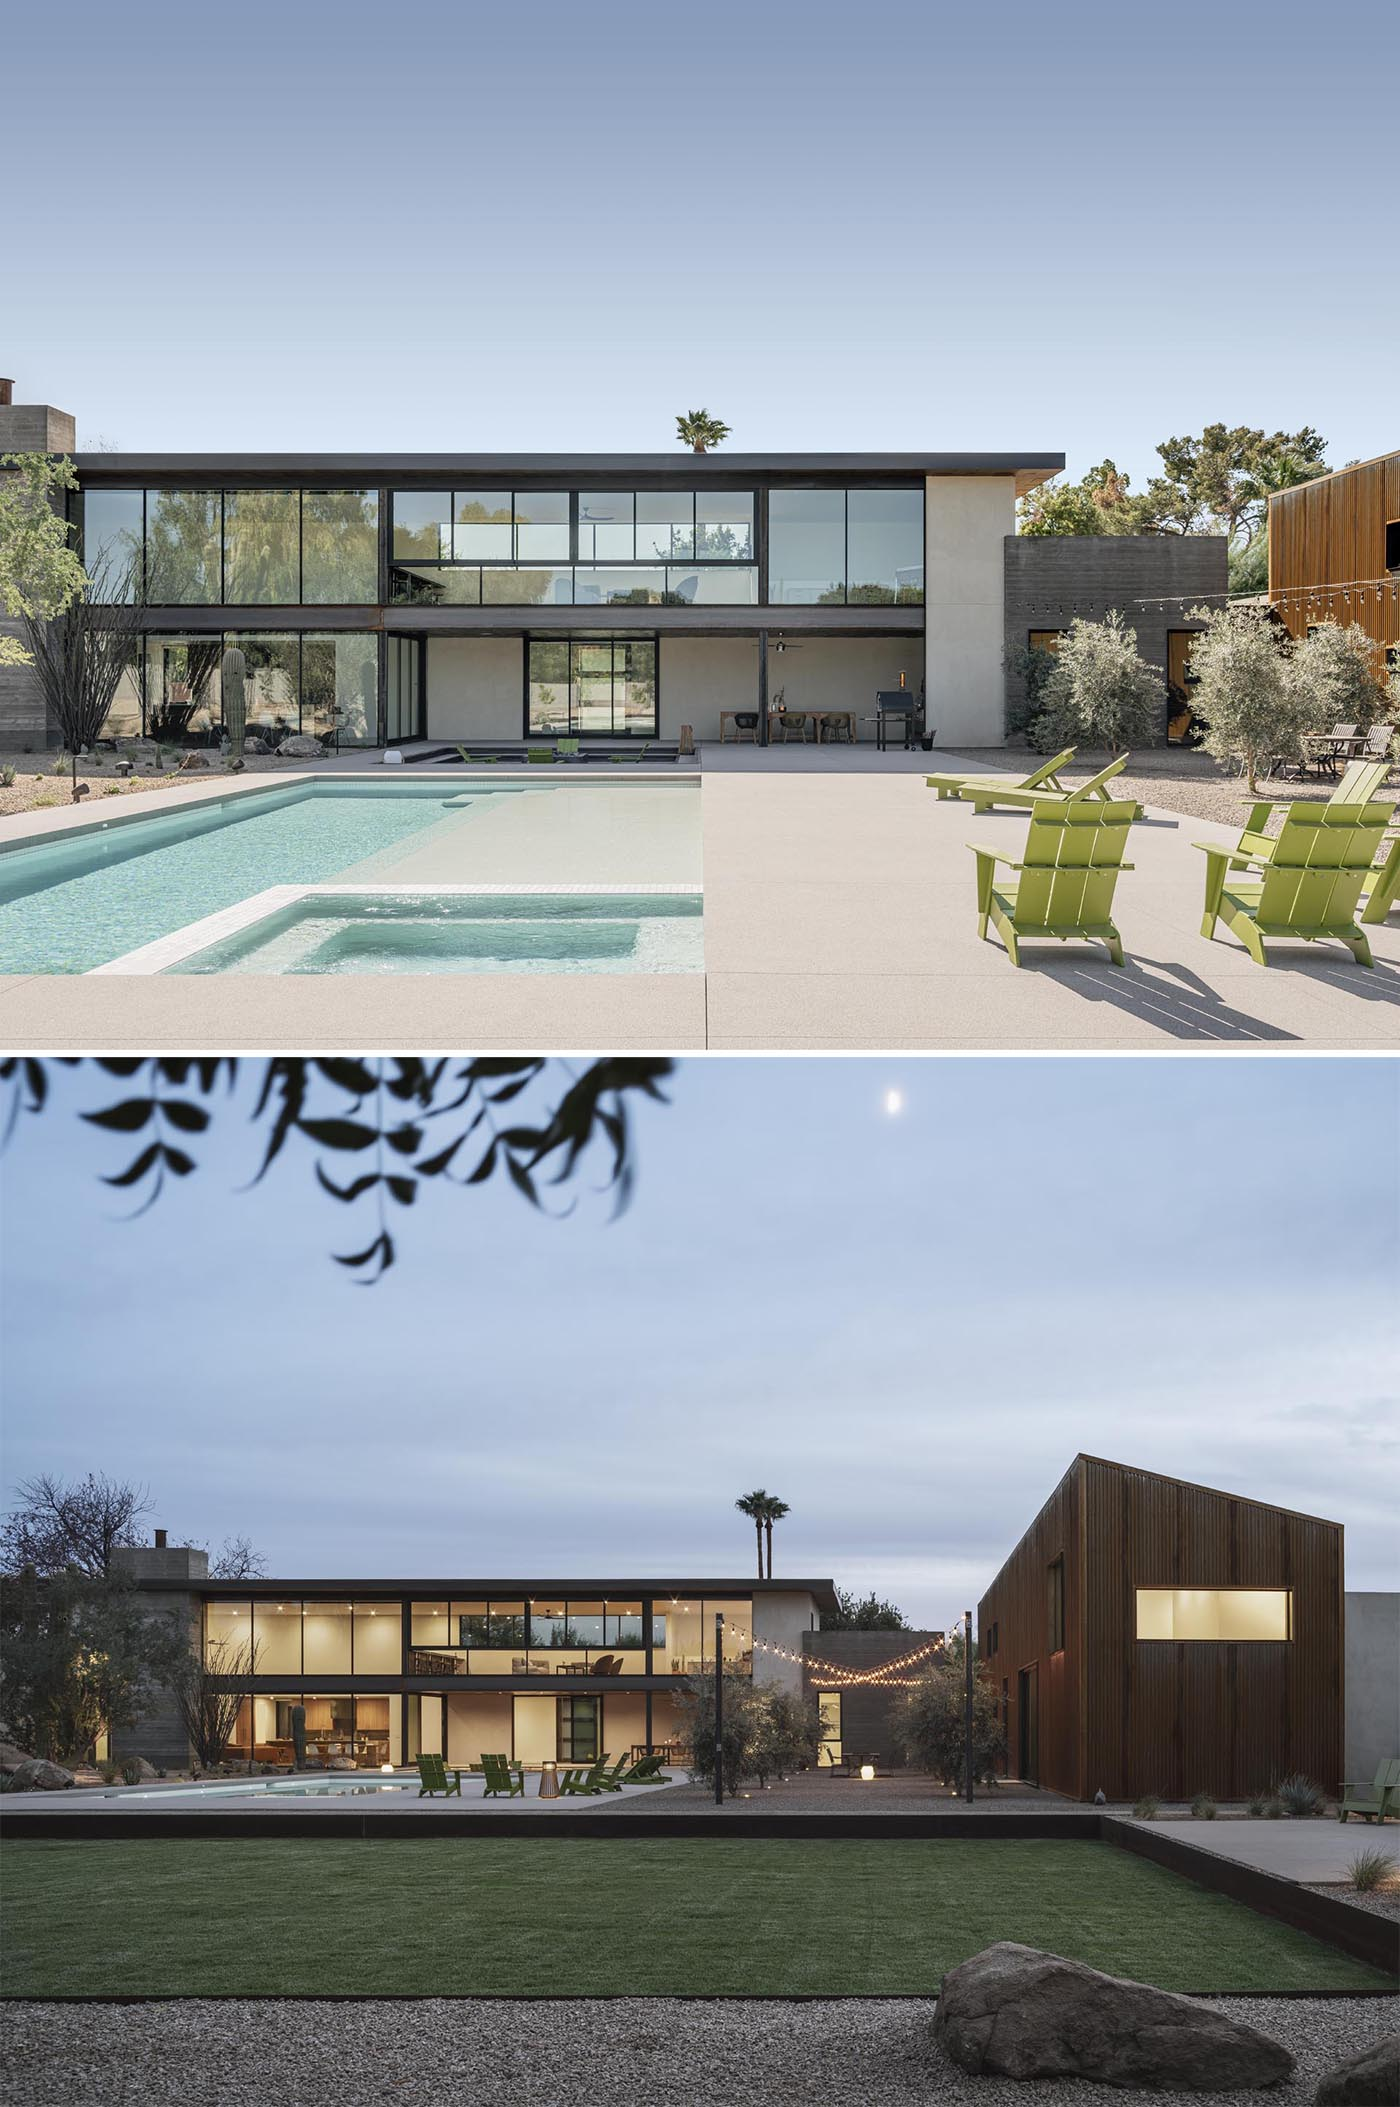 A modern home with a swimming pool, sunken fire pit, and outdoor dining.